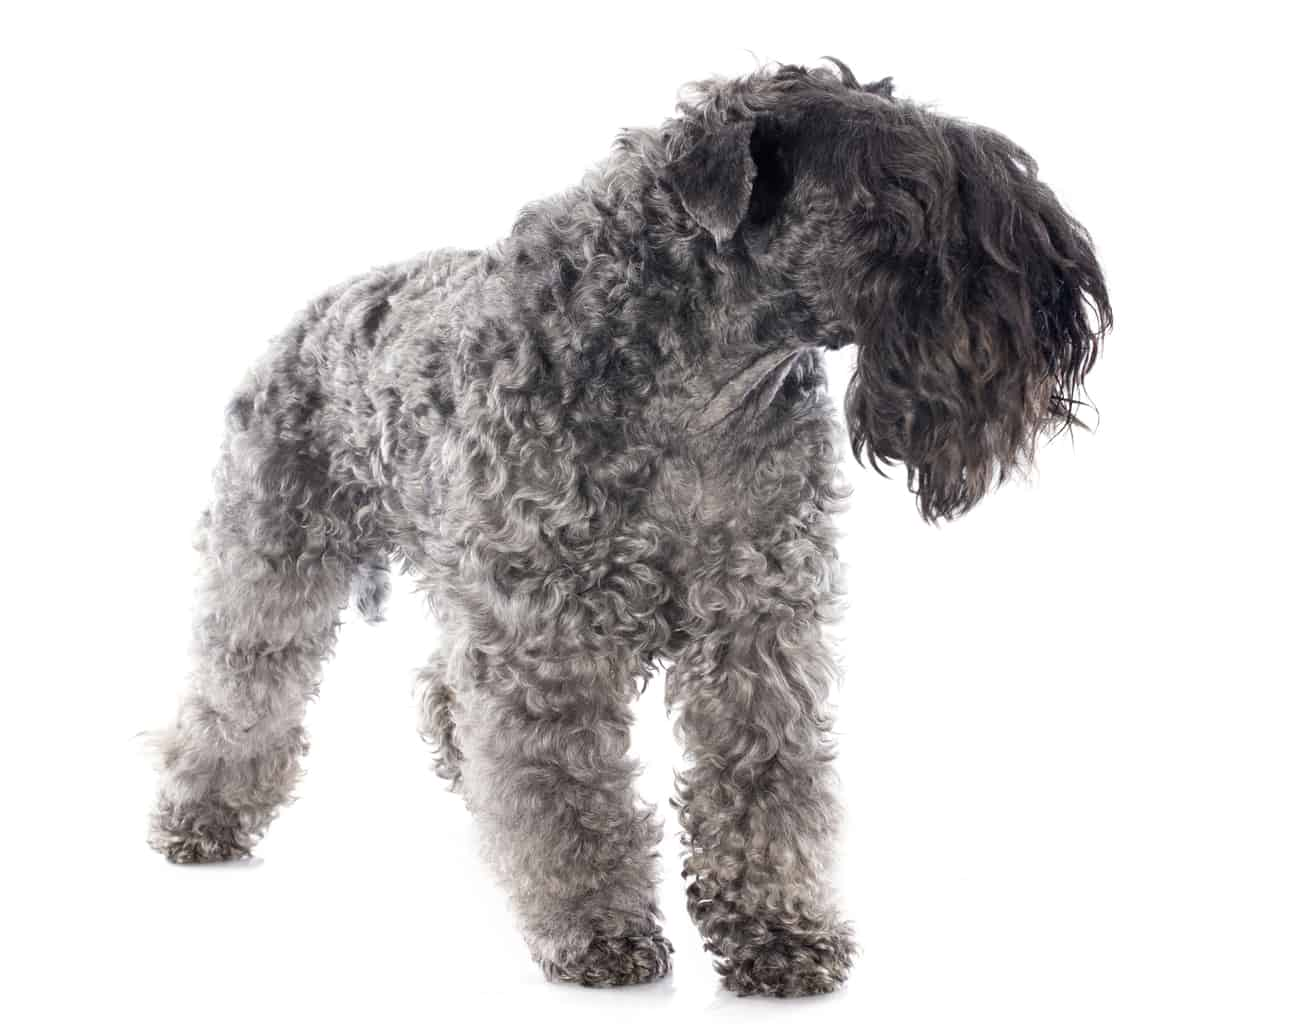 Kerry Blue Terrier Profil